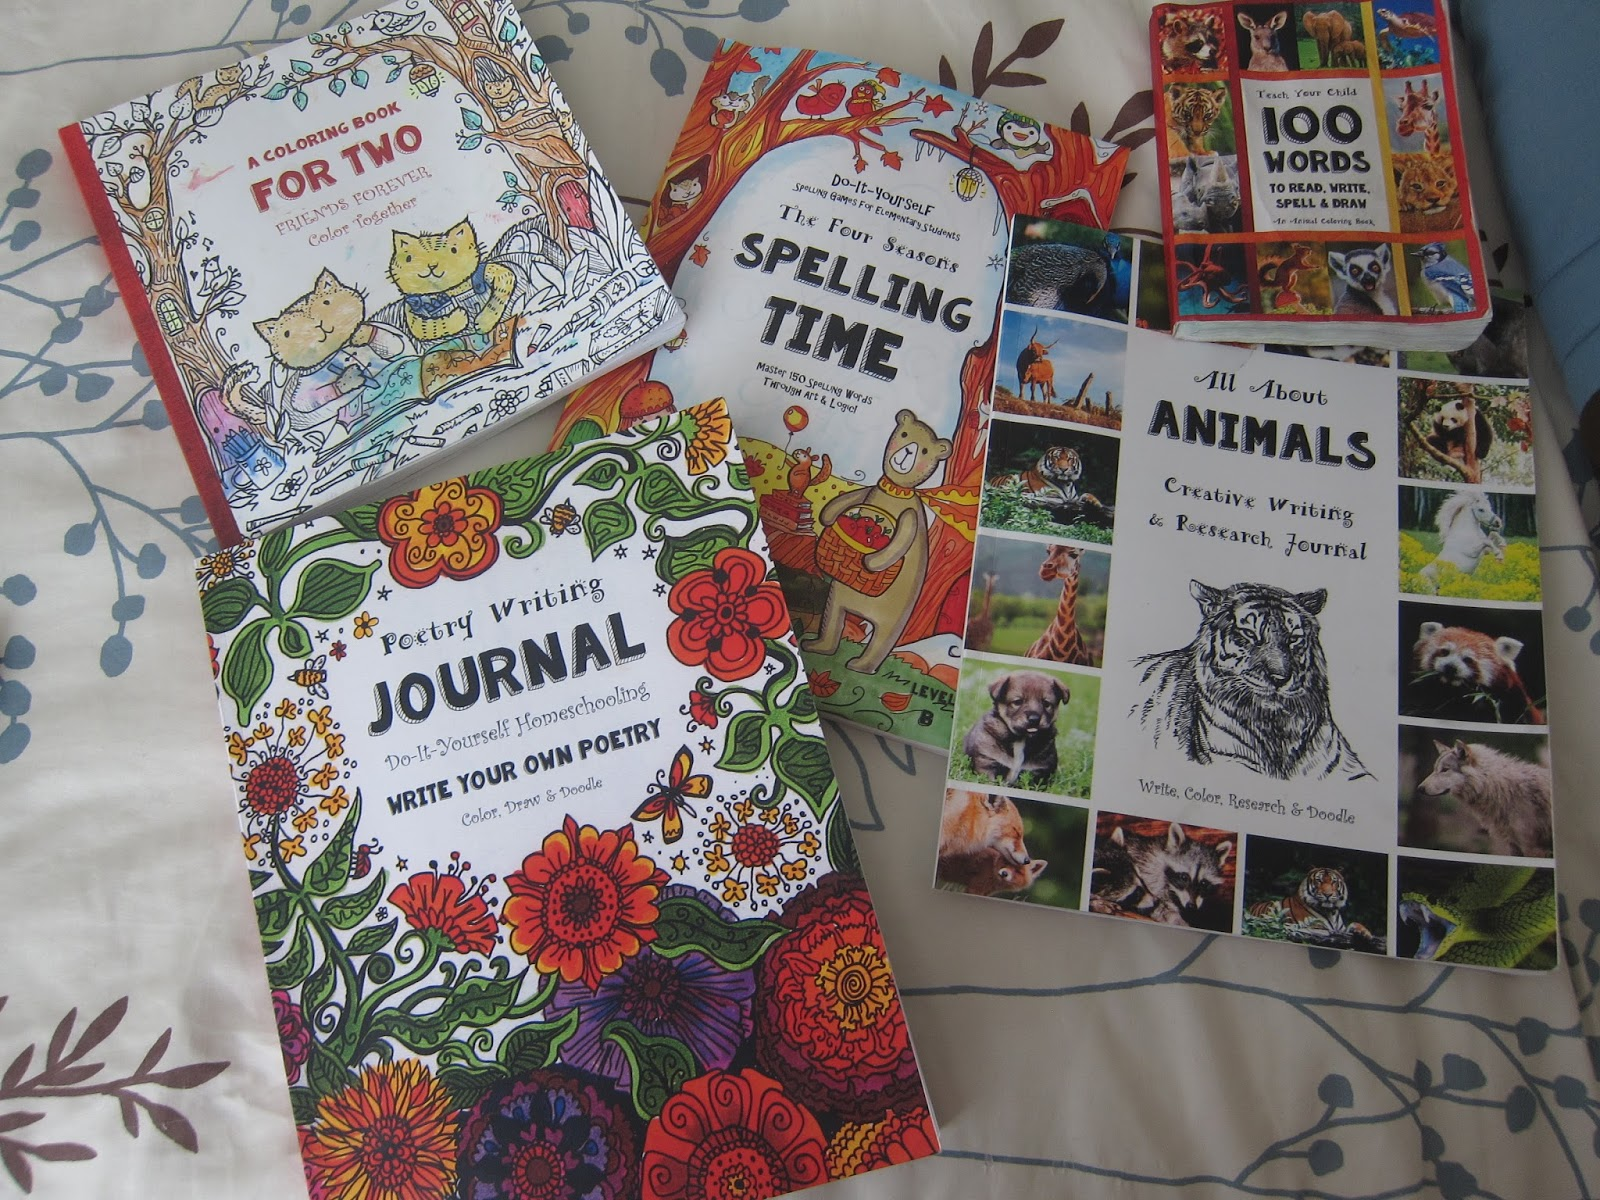 The idea book thinking tree books in categories ideas for the spelling books seasons spelling time teach your child 100 words fun schooling spelling not pictured and spelling time master the top solutioingenieria Choice Image